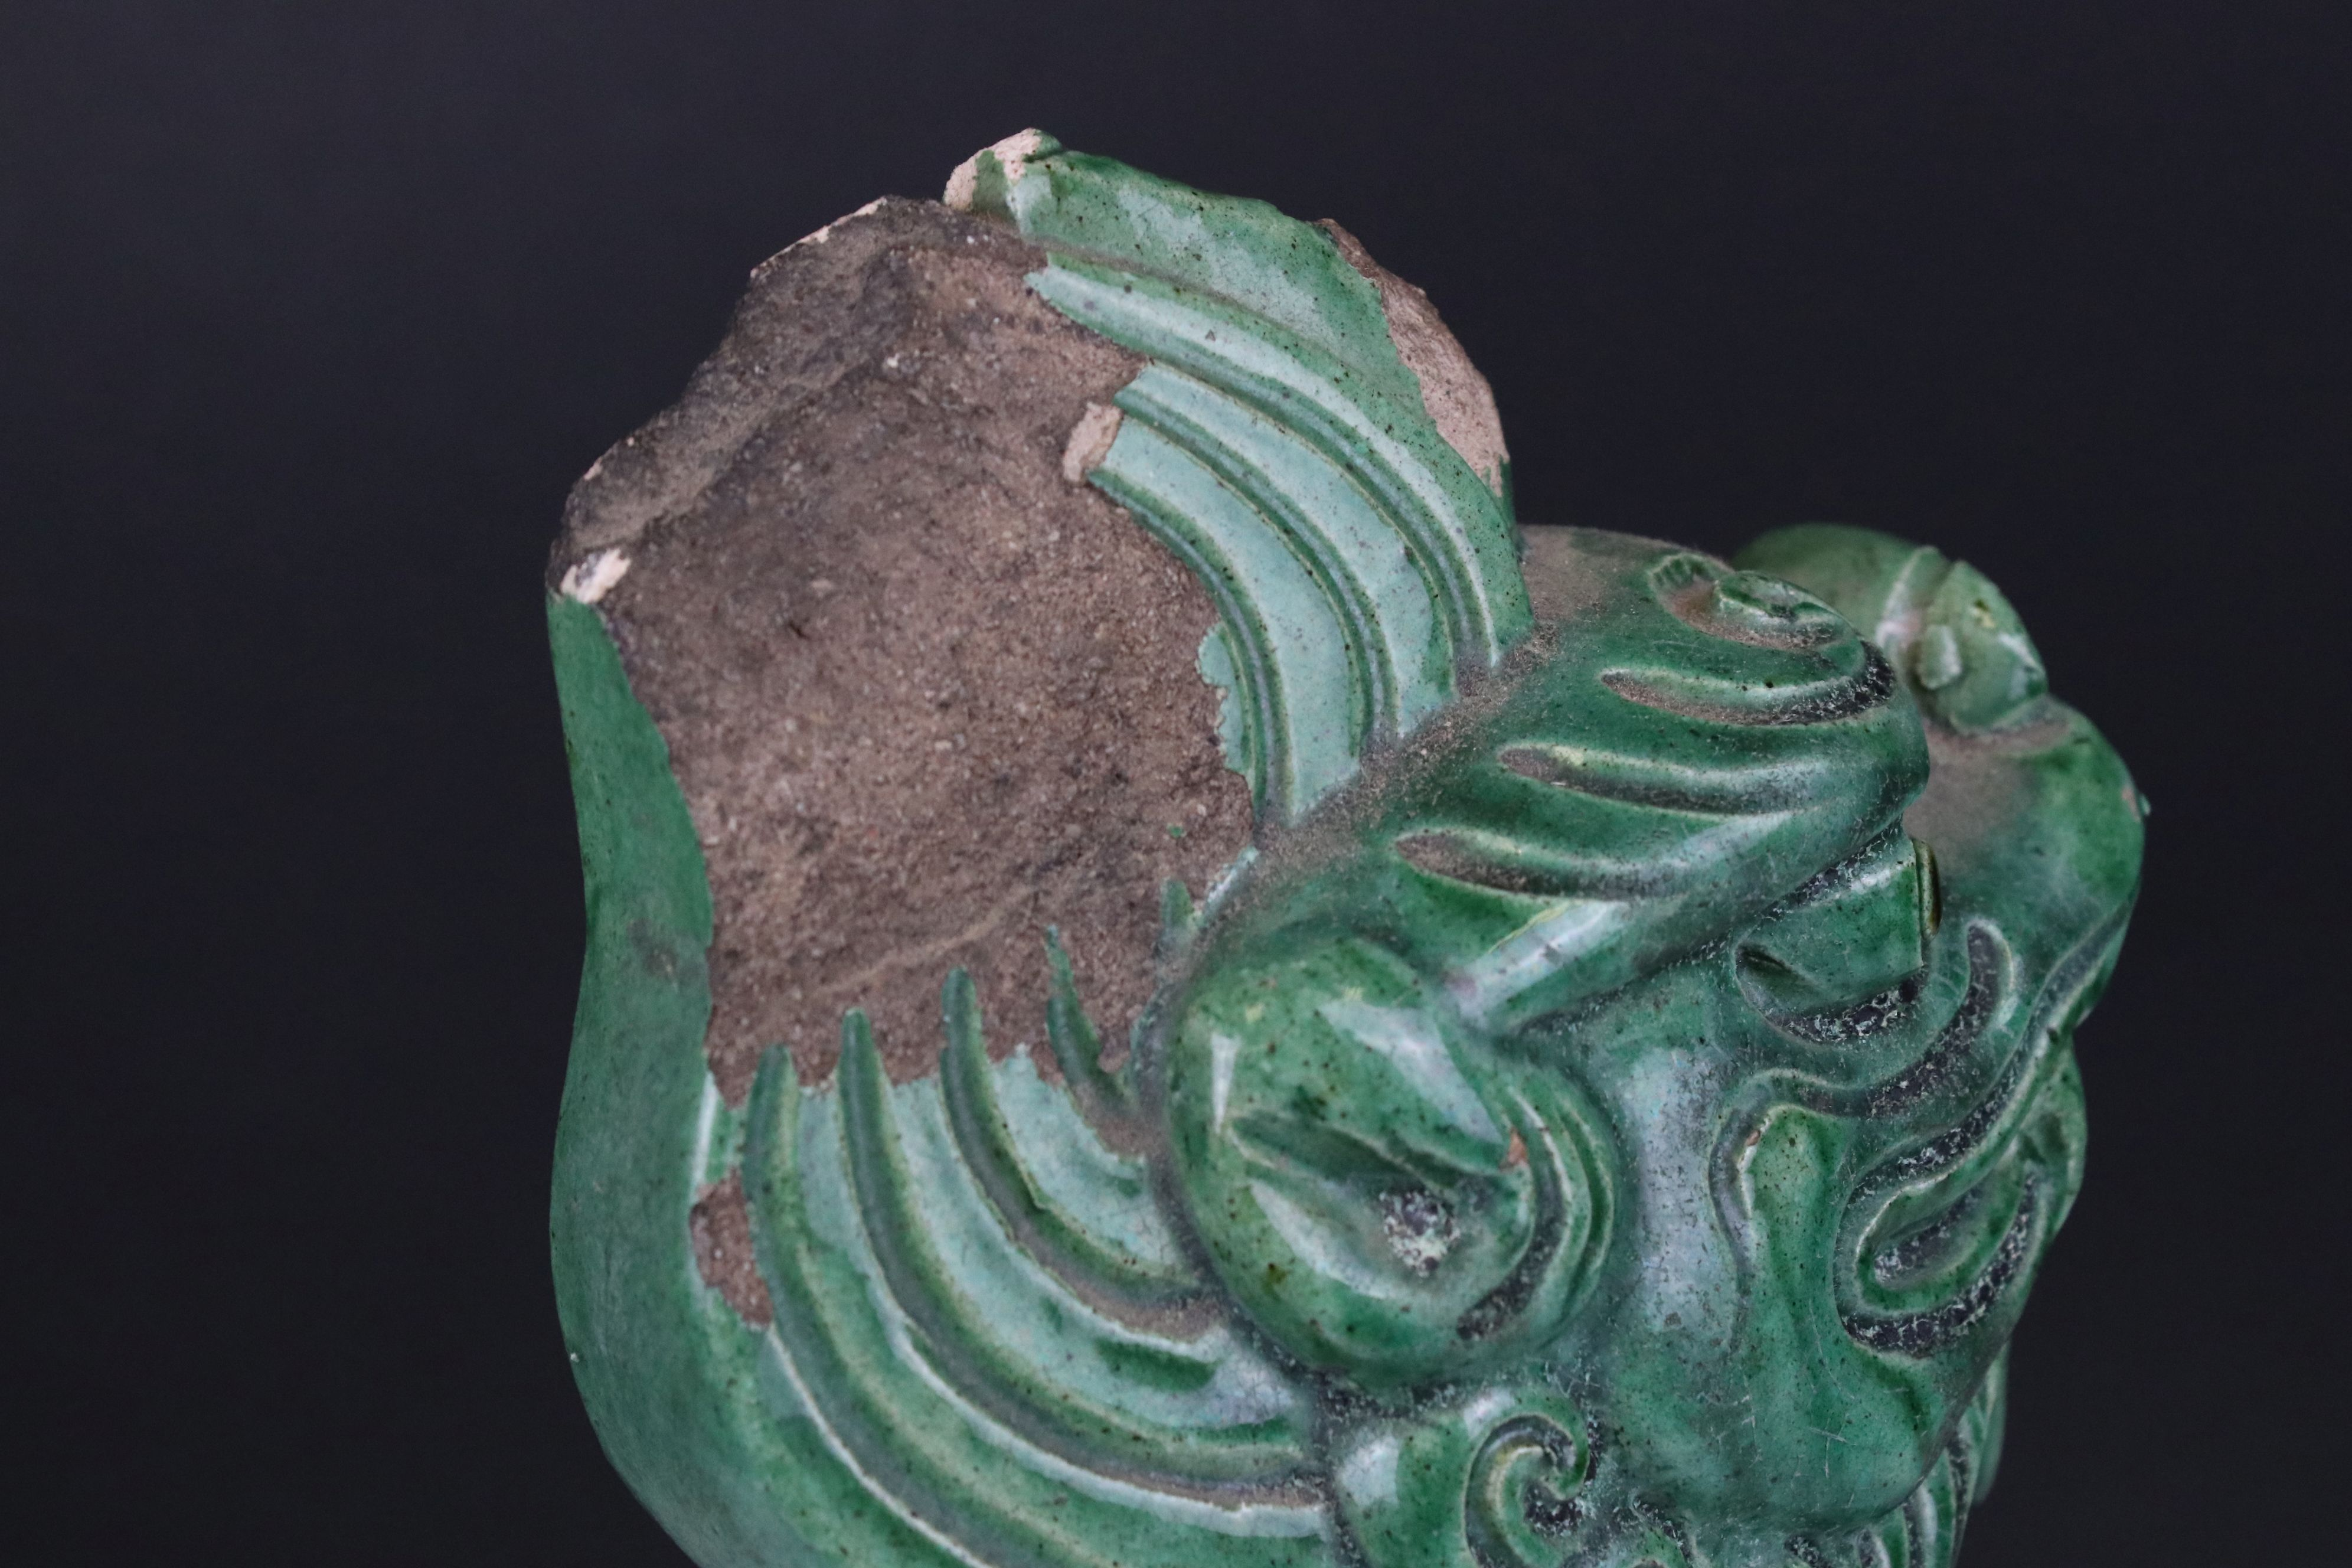 Chinese Green Glazed Pottery Roof Ridge Tile surmounted by a Mythical Creature, 34cms high - Image 6 of 6